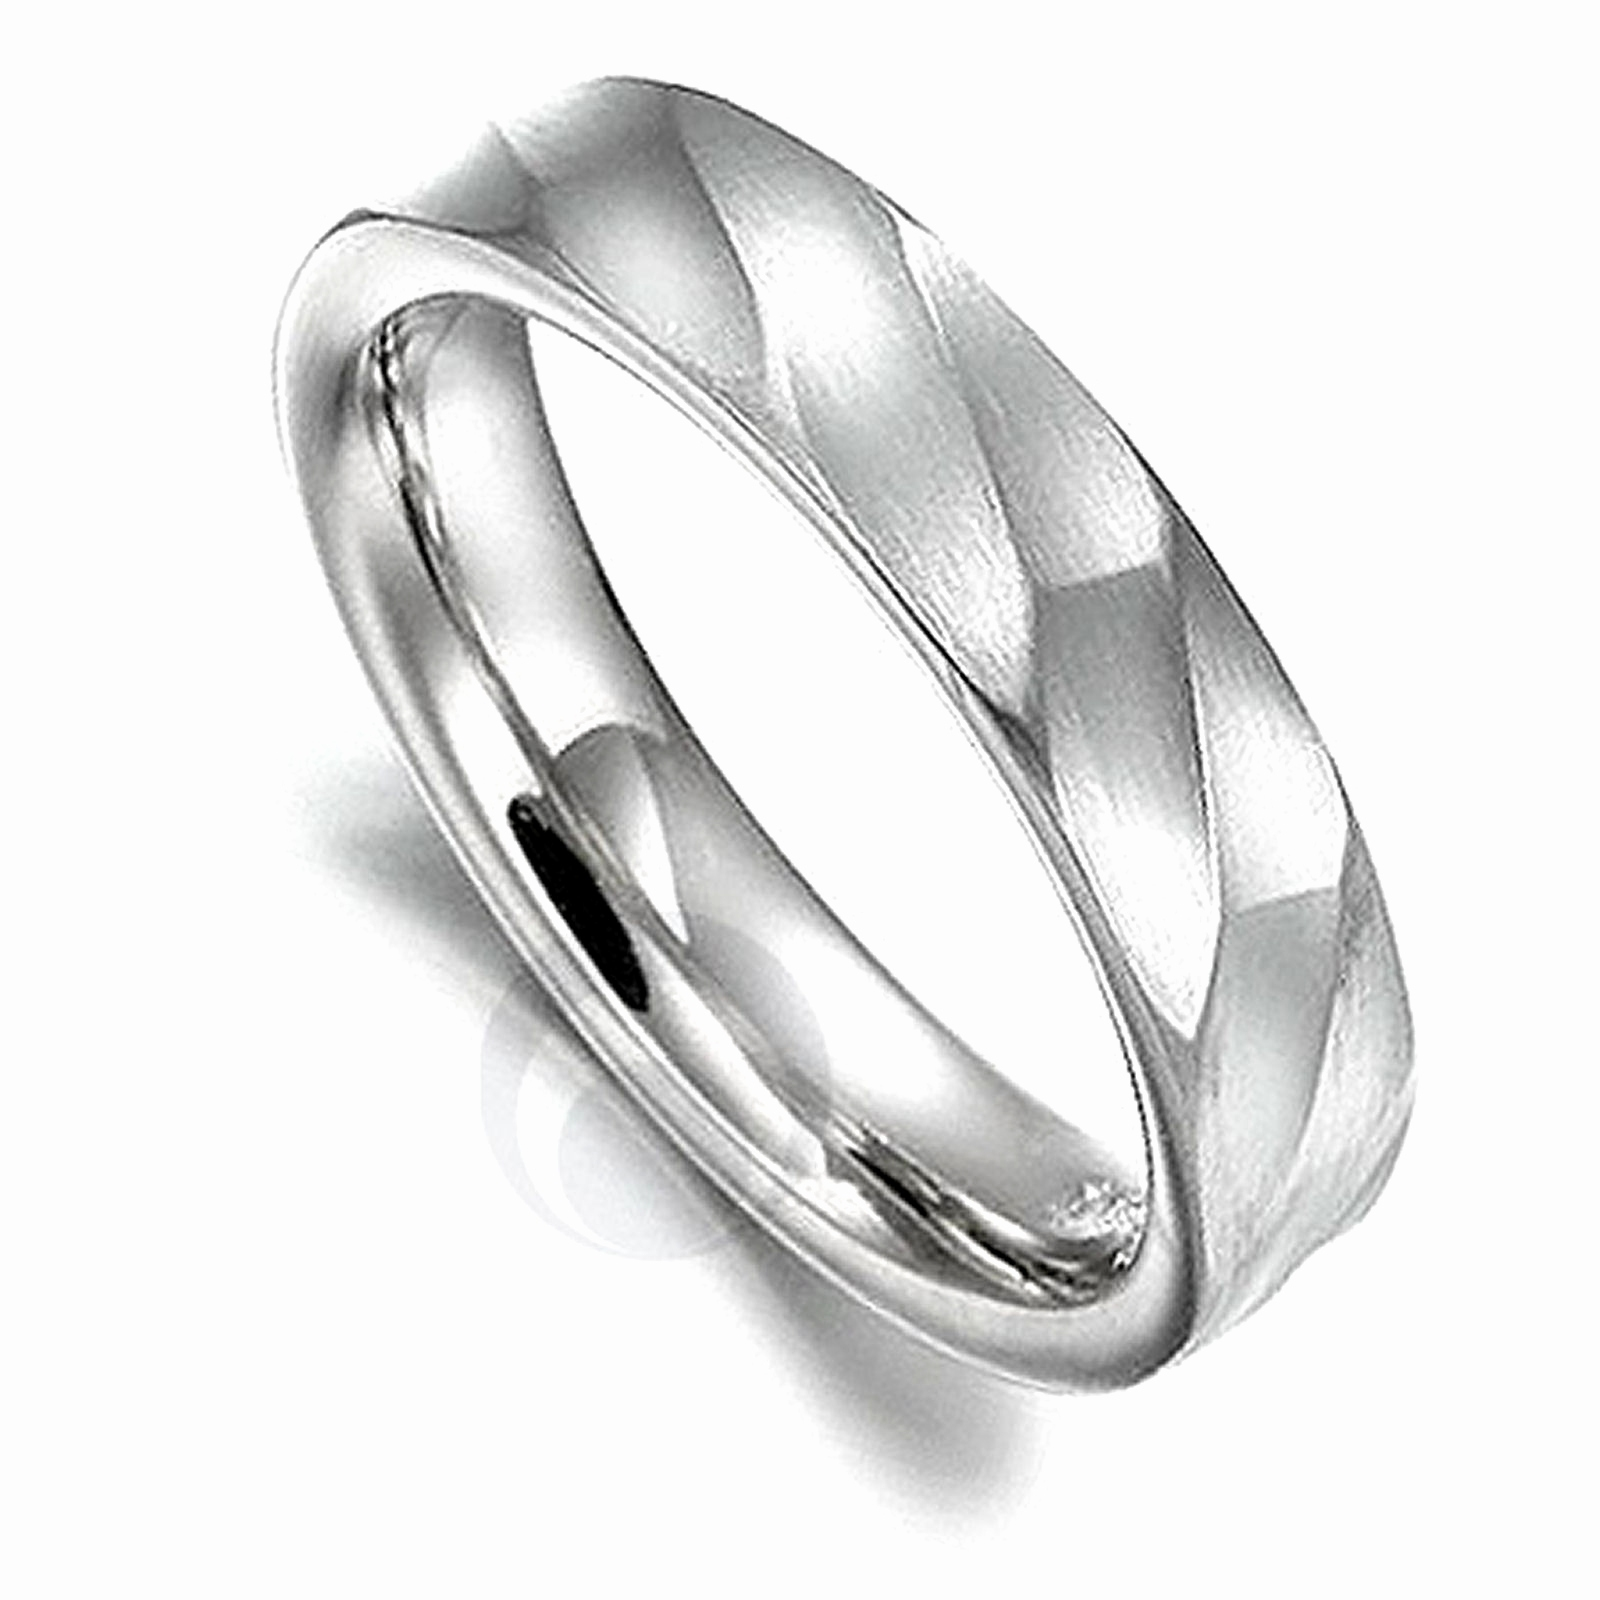 White Ceramic Wedding Bands – Bogiana Pertaining To Most Recent White Ceramic Wedding Bands (Gallery 14 of 15)